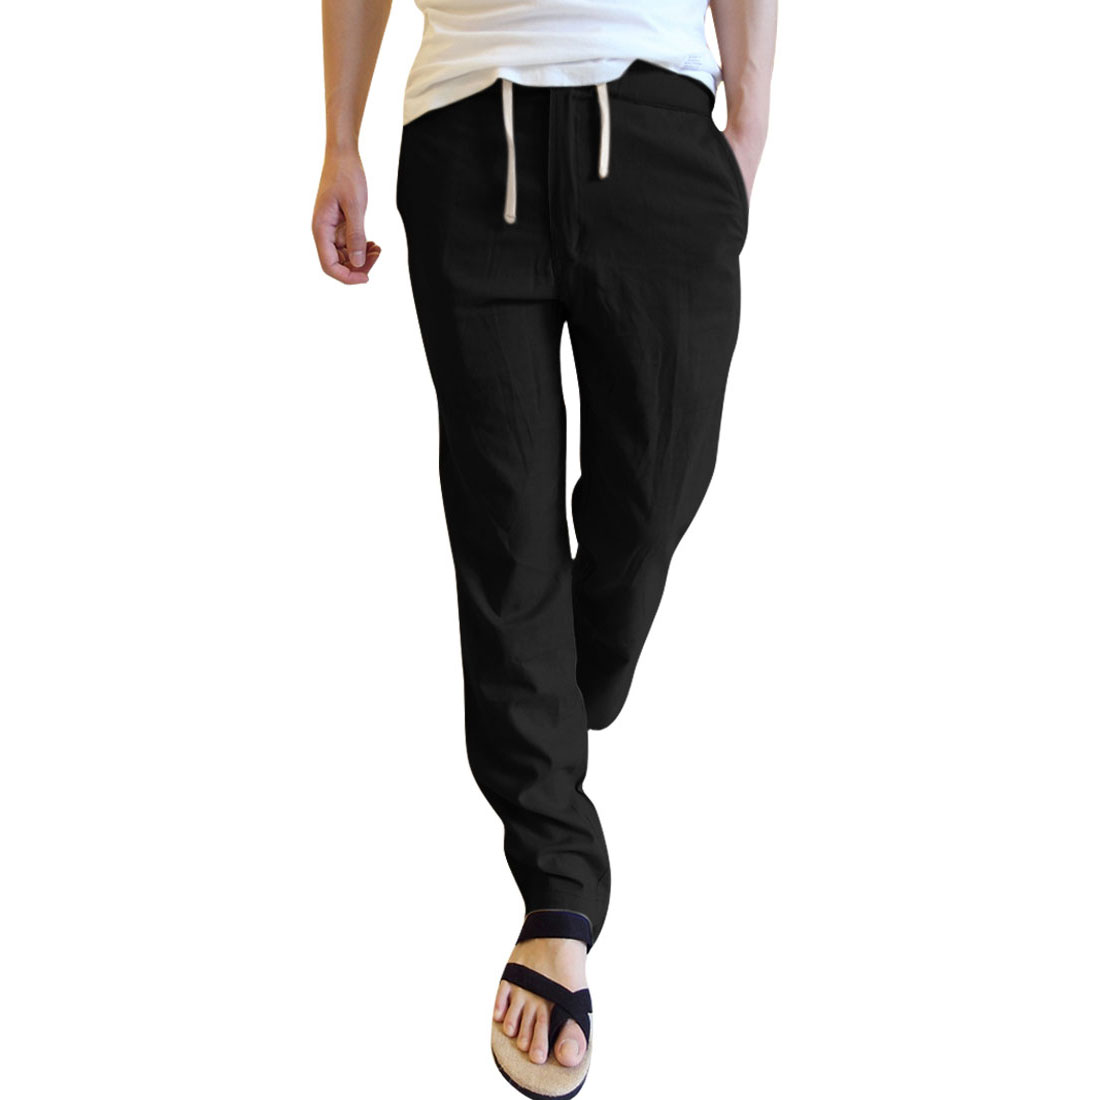 Men Drawstring Waist Slants Pockets Casual Pants Black W29